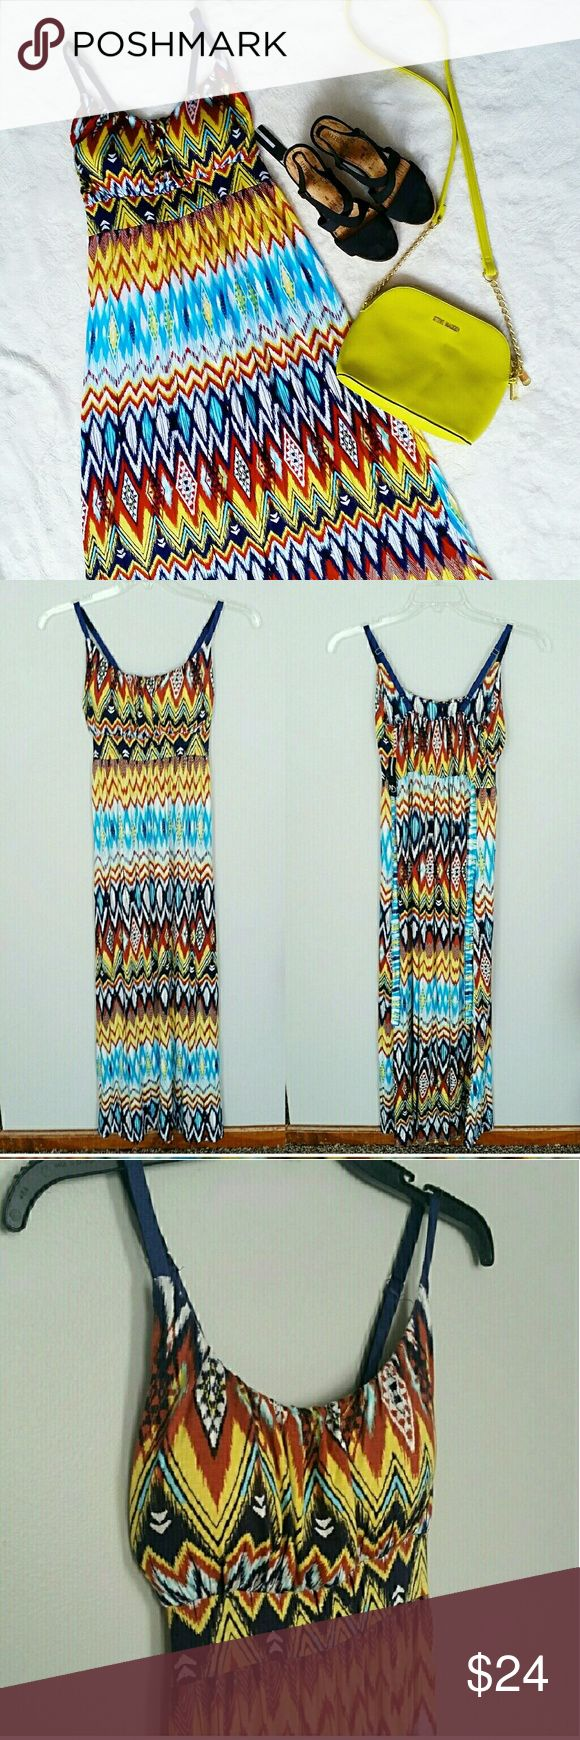 Vibrant Summer Aztec Maxi Dress Vibrant Aztec Maxi Dress This beautiful dress is NWT originally bought for $50 plus tax. It has pads in the chest so you don't need to wear a bra, it ties in the back, and it has adjustable straps. Armpit to armpit measurment is 14 inches across. Waist measures 14 inches across. Skirt is 1 inches in length. Neck to hem measures 46 inches. Hem width is 28 inches. The material feels like a maxi skirt, a soft tee feel. 97% rayon 3% spandex. new directions Dresses…